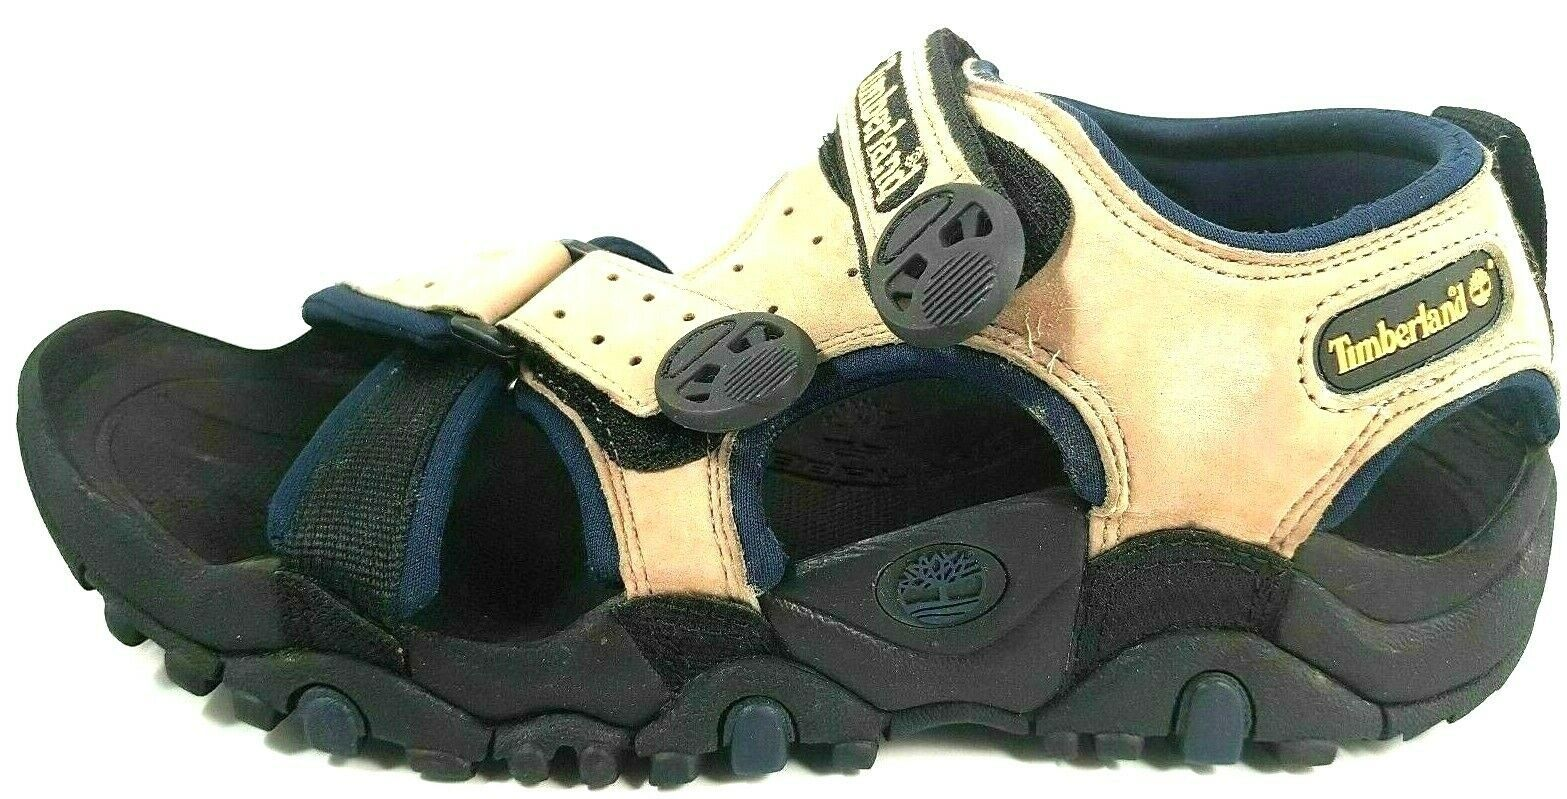 Primary image for TIMBERLAND MENS SANDALS TRAIL DOG GREIGE BEIGE BLUE HIKING OUTDOORS 17163 LEATHE